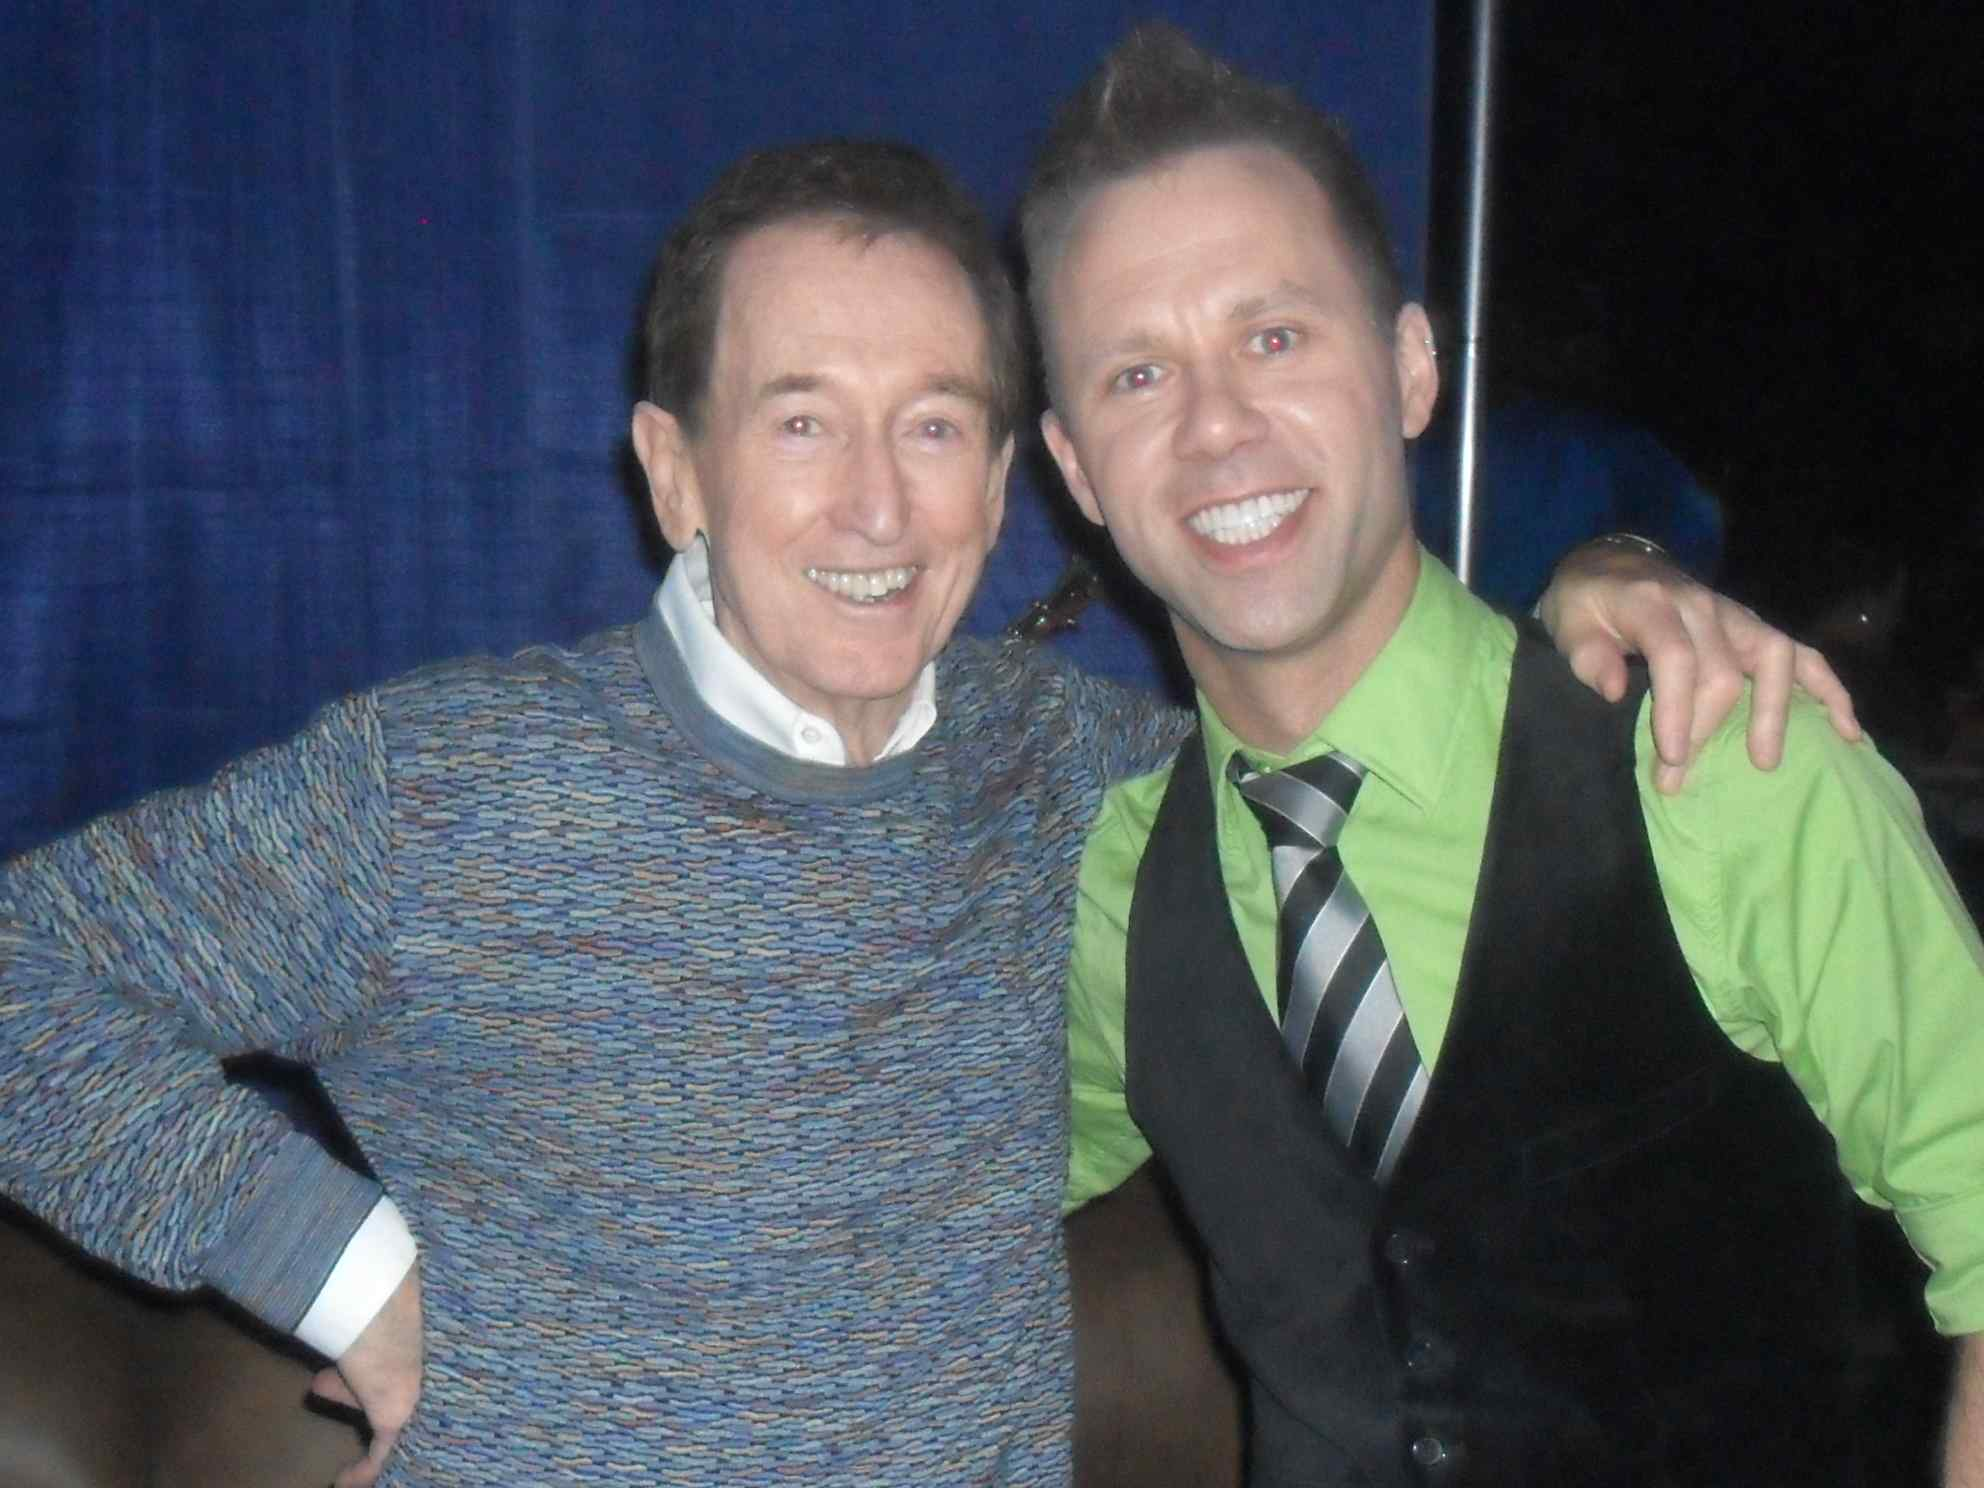 Jeffery Straker and Bob McGrath